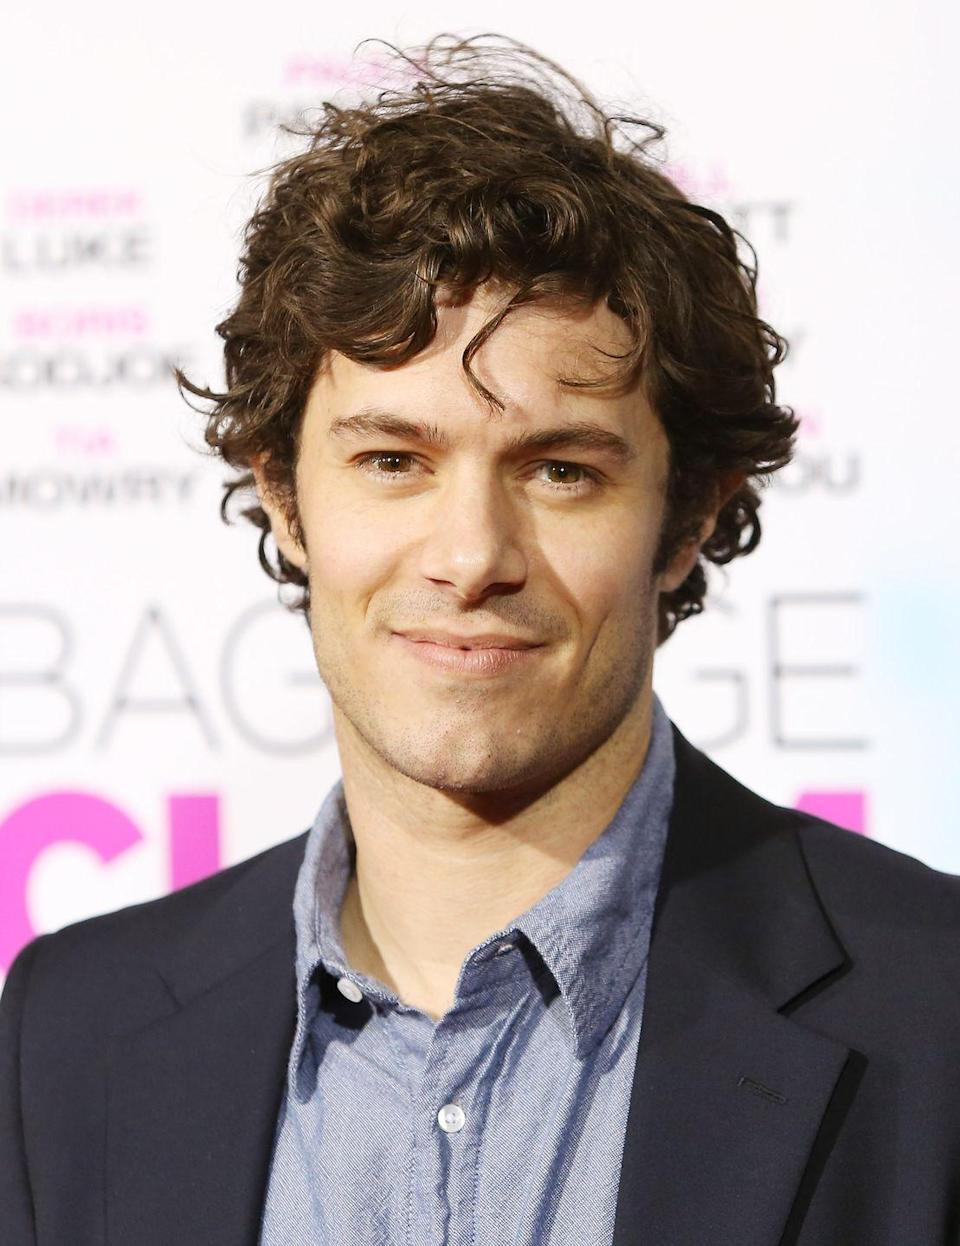 "<p>It's not that Adam Brody hates the character he played on <em>The O.C</em>., it's that he hates talking about him now. (Understandable.) In an interview with the <a href=""http://www.huffingtonpost.com/2014/11/13/adam-brody-the-oc_n_6154248.html "" rel=""nofollow noopener"" target=""_blank"" data-ylk=""slk:Huffington Post"" class=""link rapid-noclick-resp""><em>Huffington Post</em></a>, the actor got candid about why he's kind of annoyed to keep talking about Seth. ""It gets boring, that's all. The only way it bothers me—it's not that I'm not proud of it—it's that I've exhausted the conversations about it, in my mind,"" Brody said. ""Forgive me for comparing myself in any way—and I'm not—but Harrison Ford, I understand why he would be crotchety talking about <em>Star Wars</em>.""</p>"